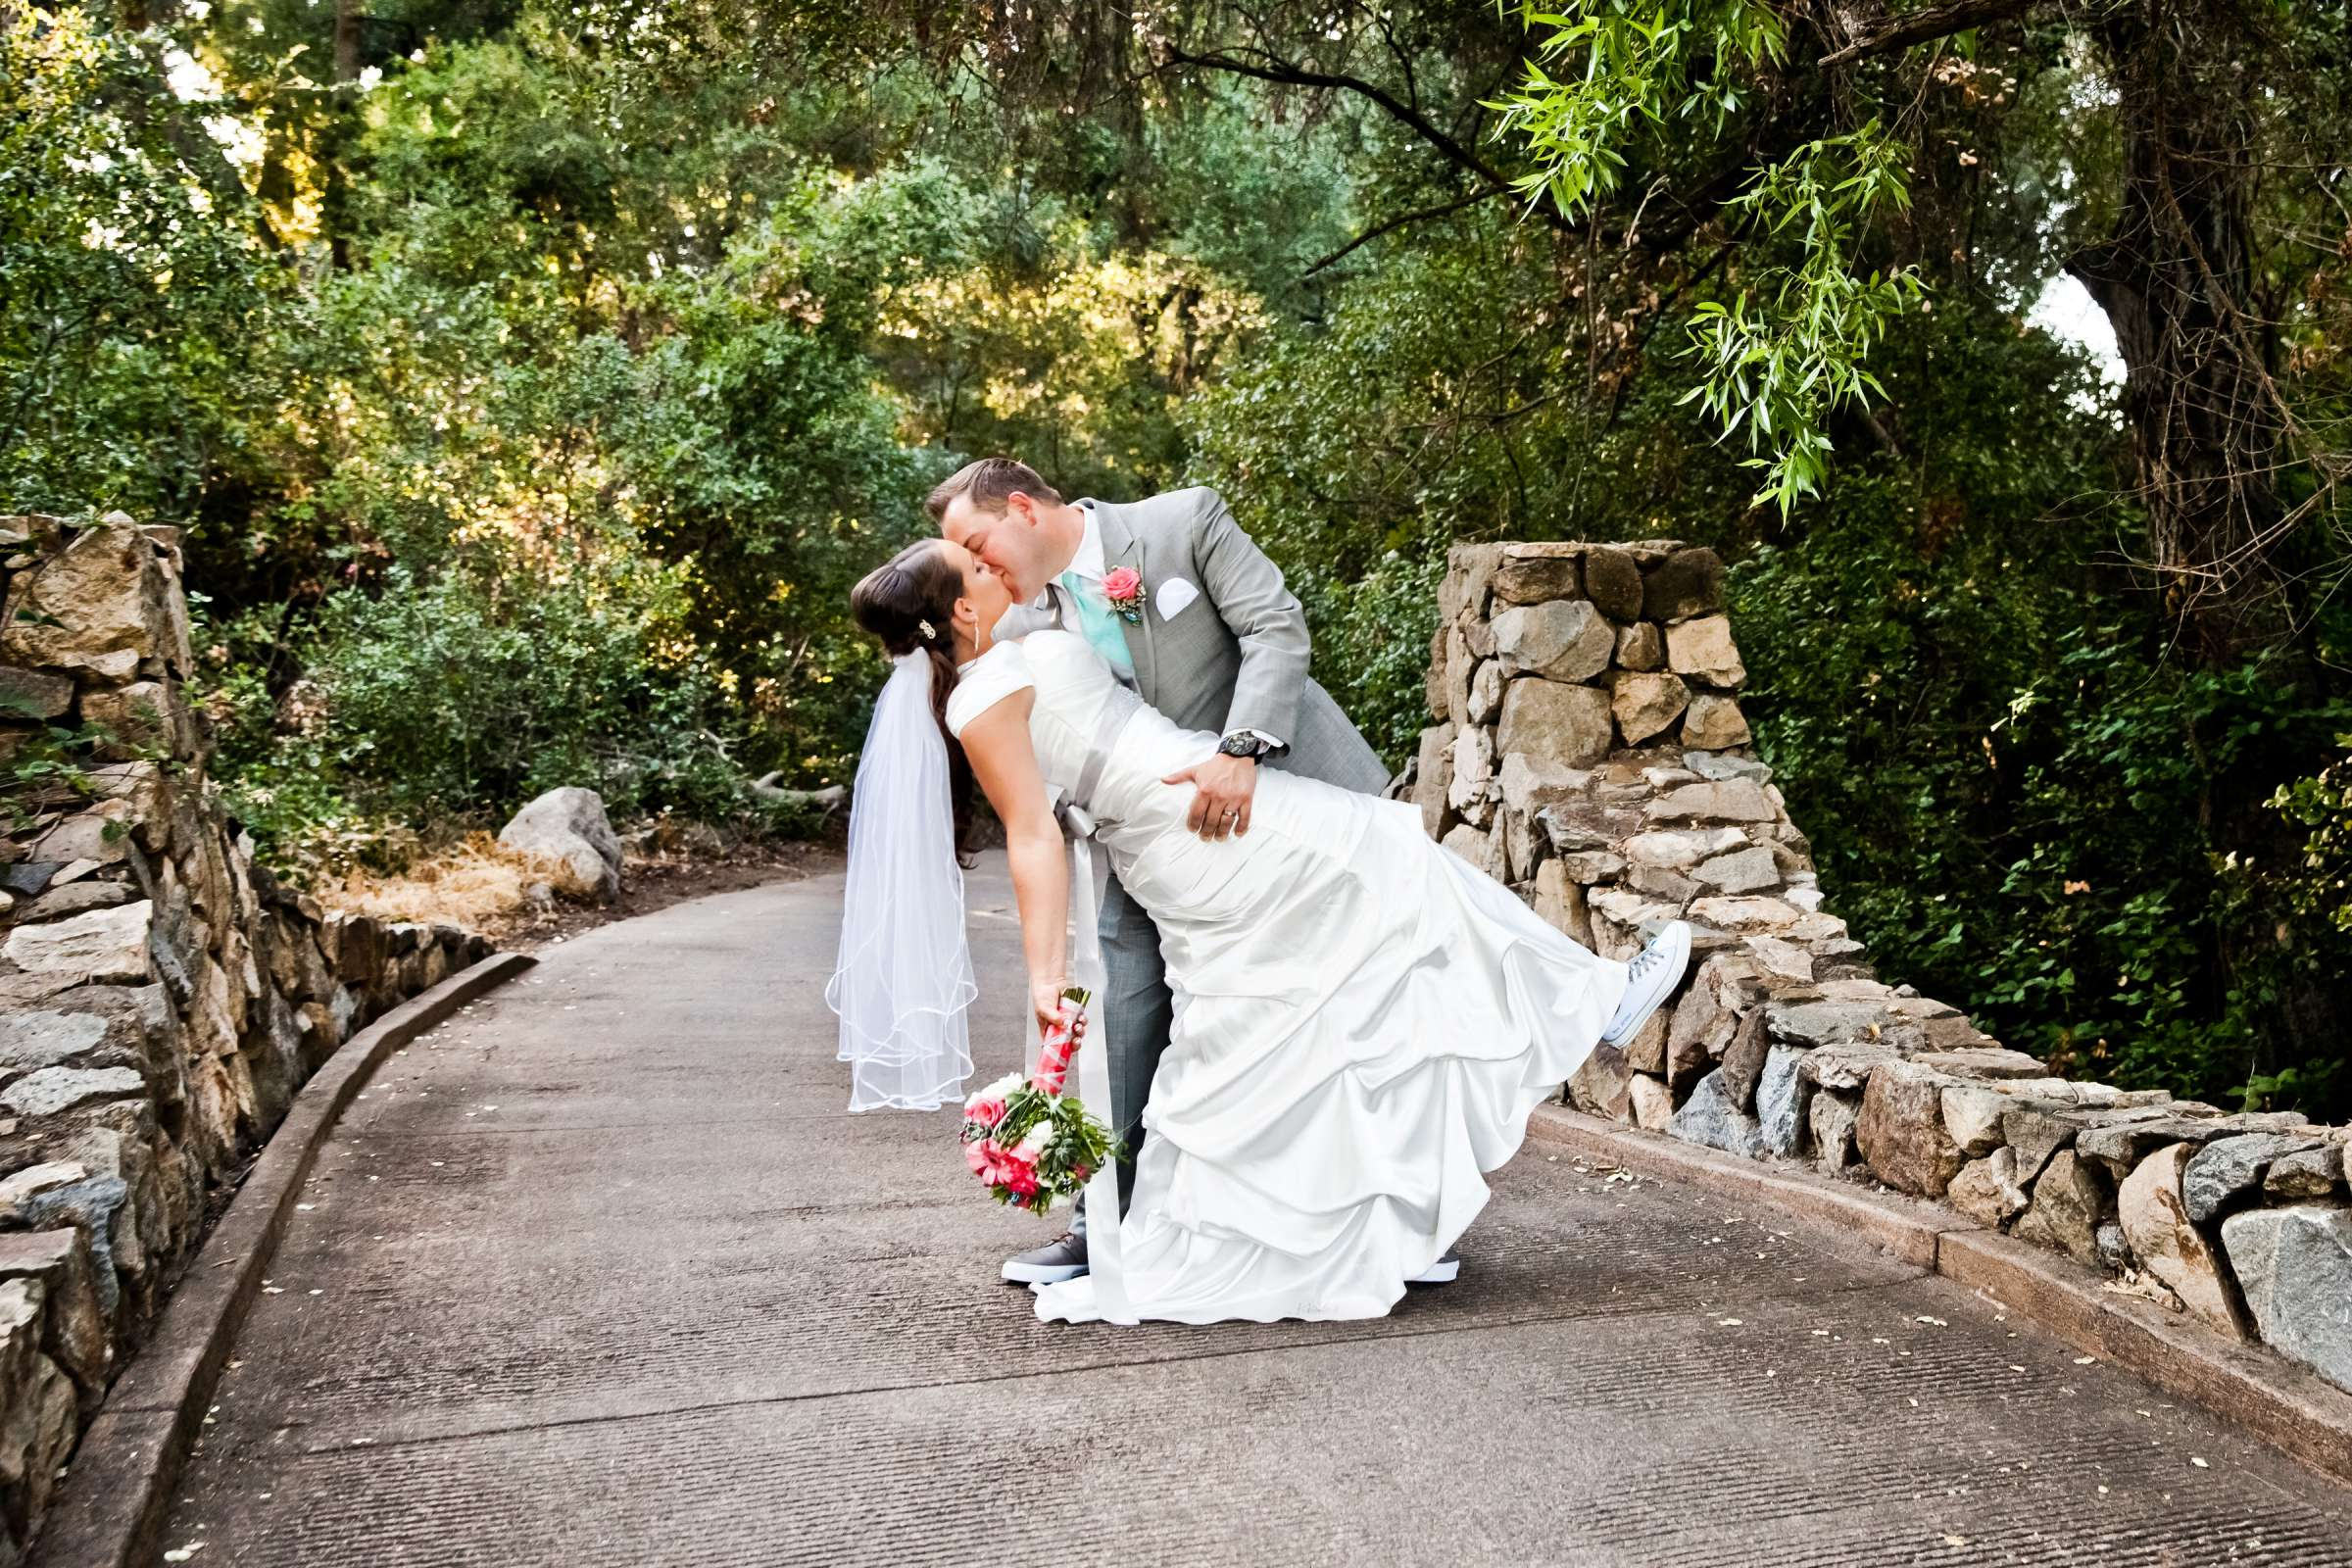 Mt Woodson Castle Wedding, Krista and Donald Wedding Photo #344666 by True Photography